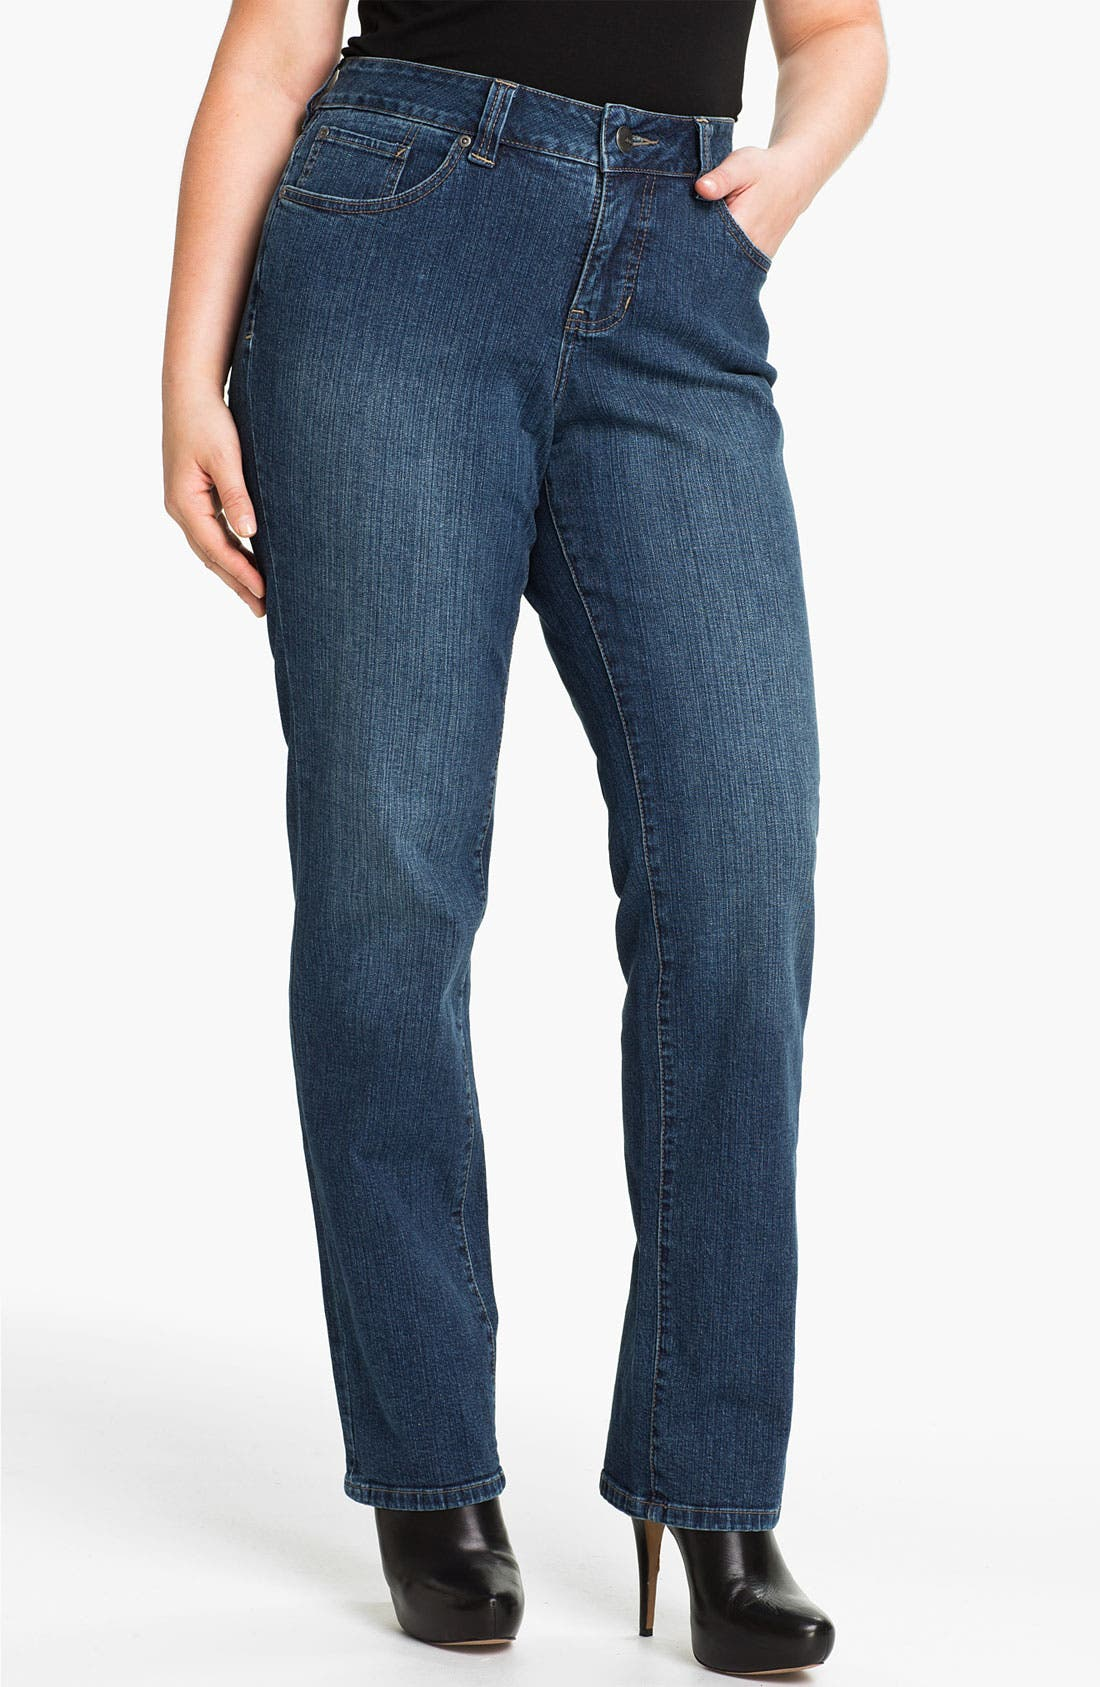 Alternate Image 1 Selected - Jag Jeans 'Madison' Straight Leg Jeans (Plus Size)